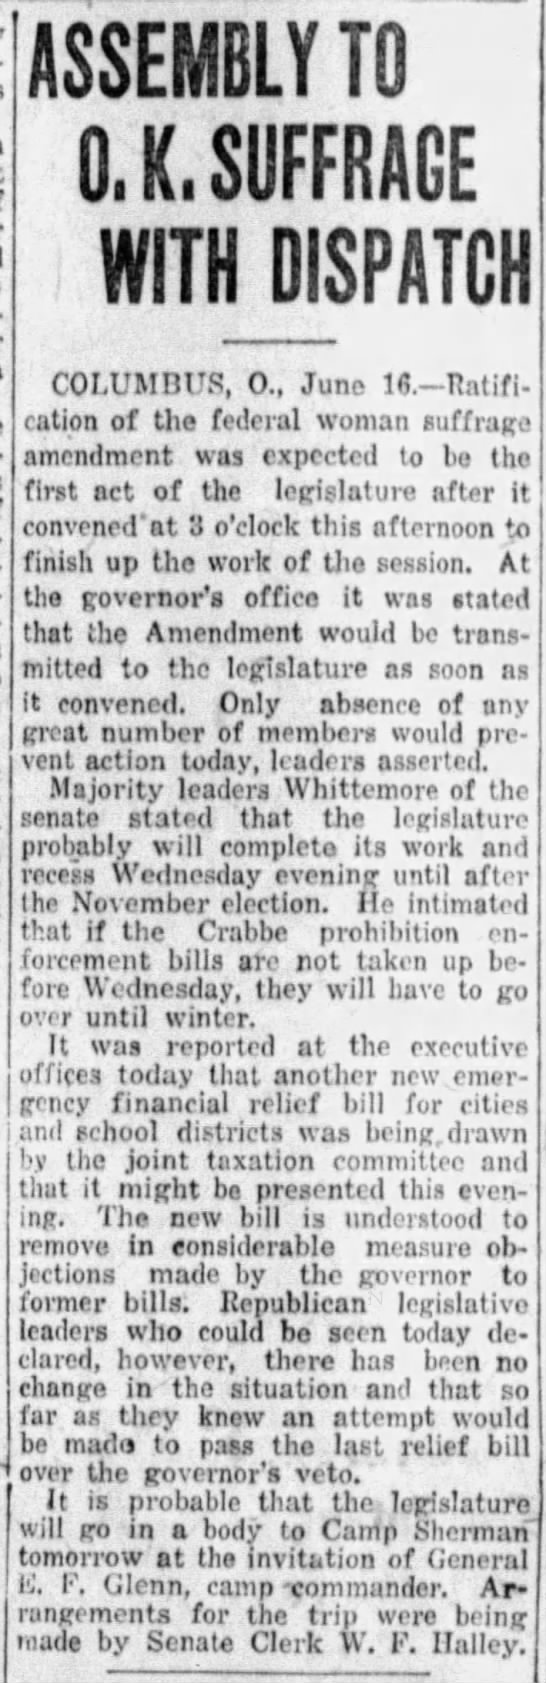 Assembly to O. K. Suffrage with Dispatch. The Dayton Daily News (Dayton, Ohio) 16 June 1919, p 9 -